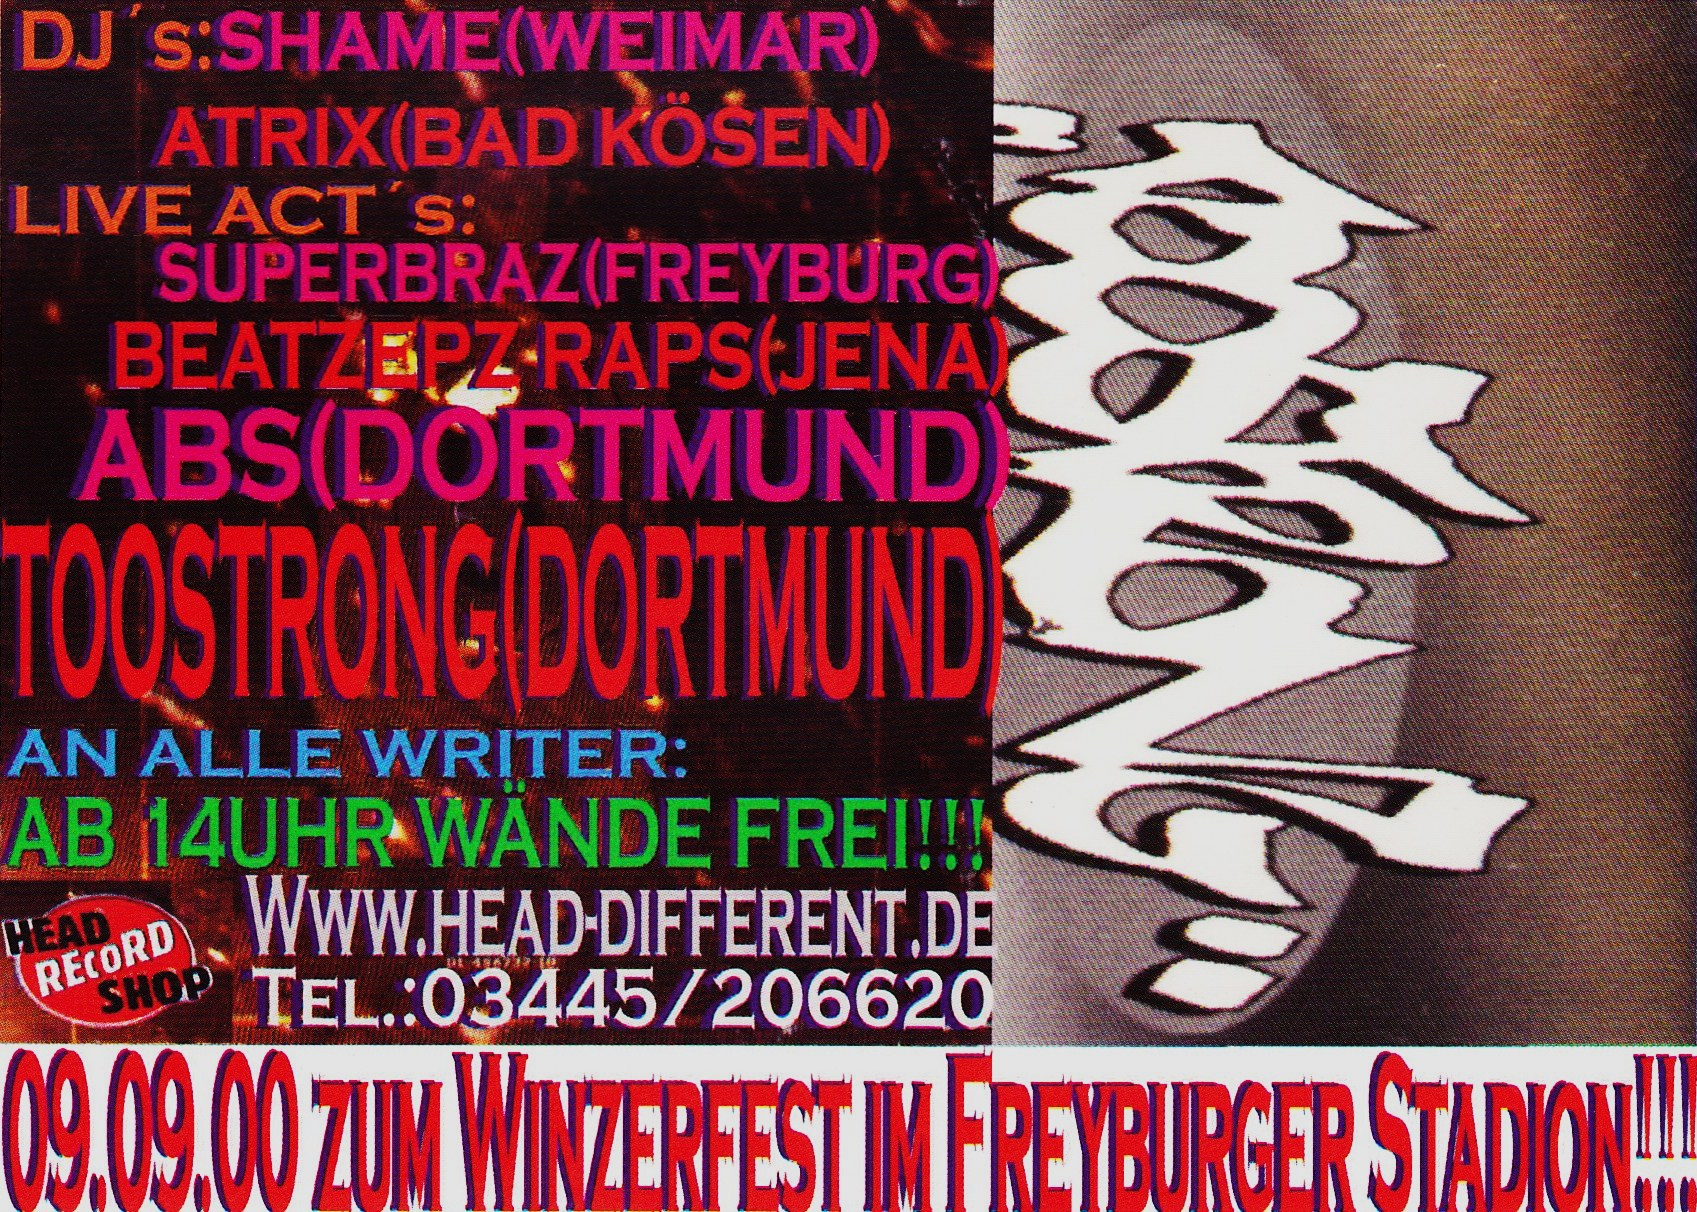 DJ Shame mit ABS & Too Strong